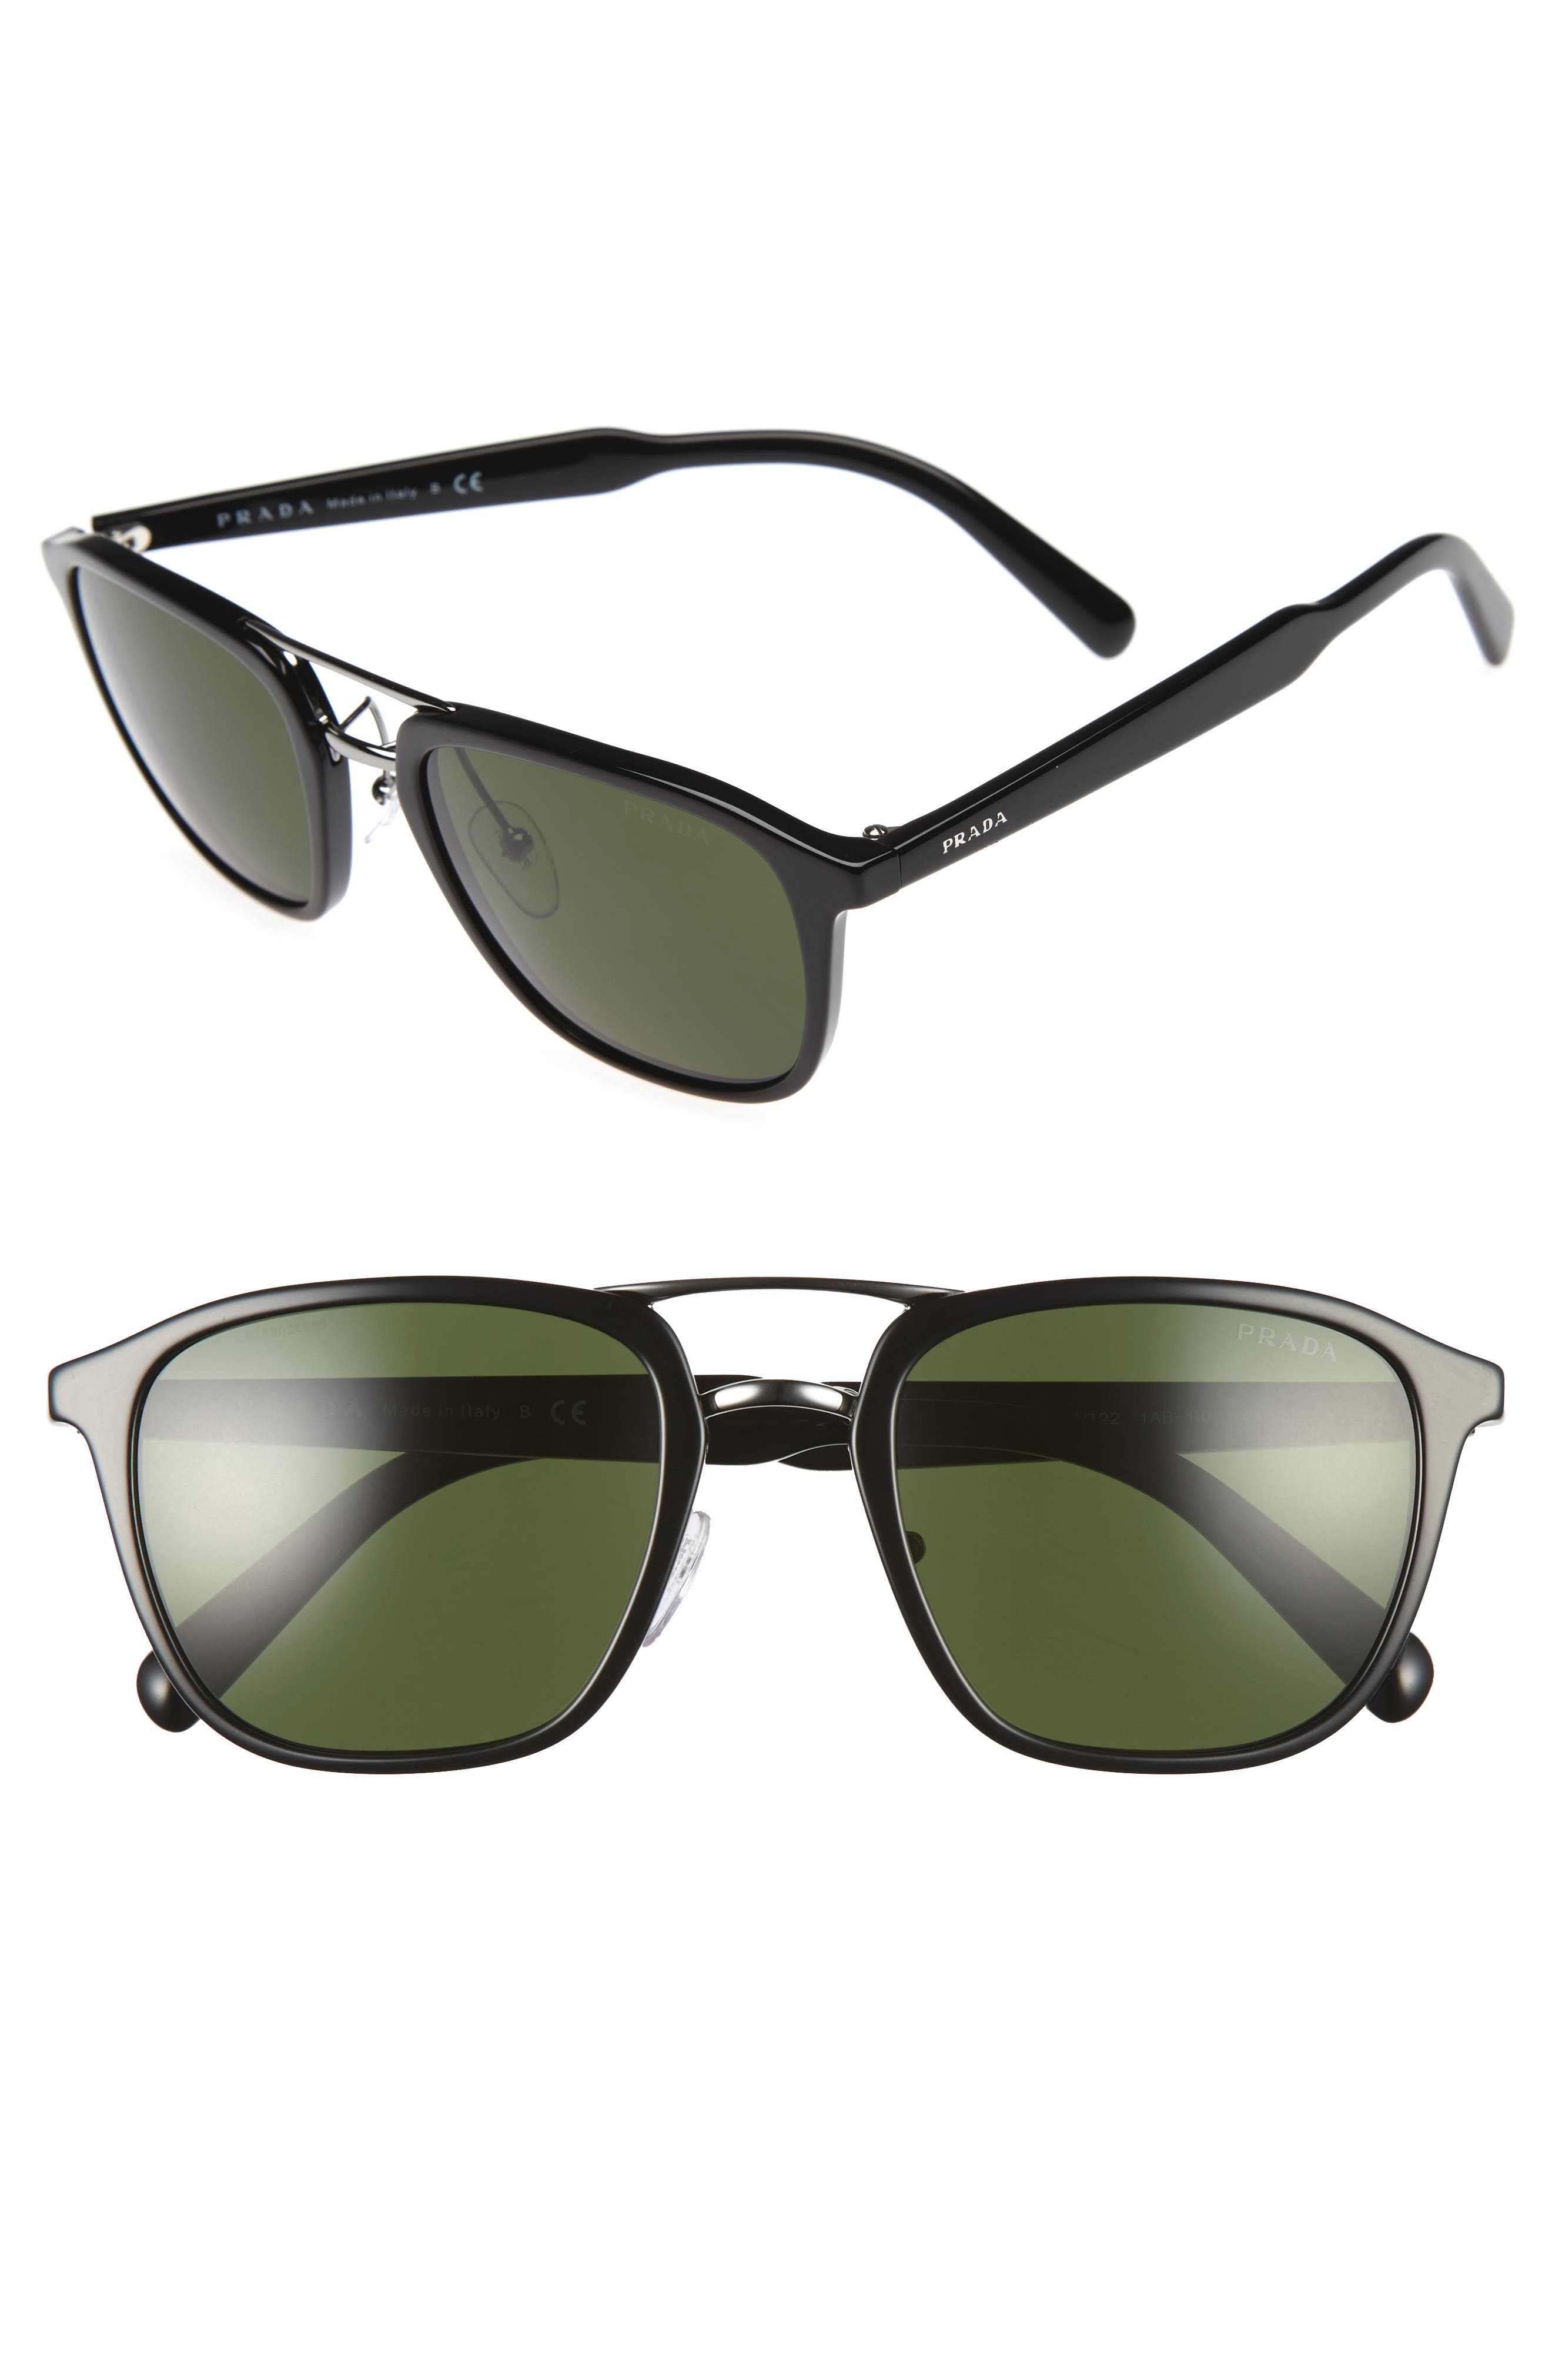 54mm Sunglasses,                             Main thumbnail 1, color,                             001